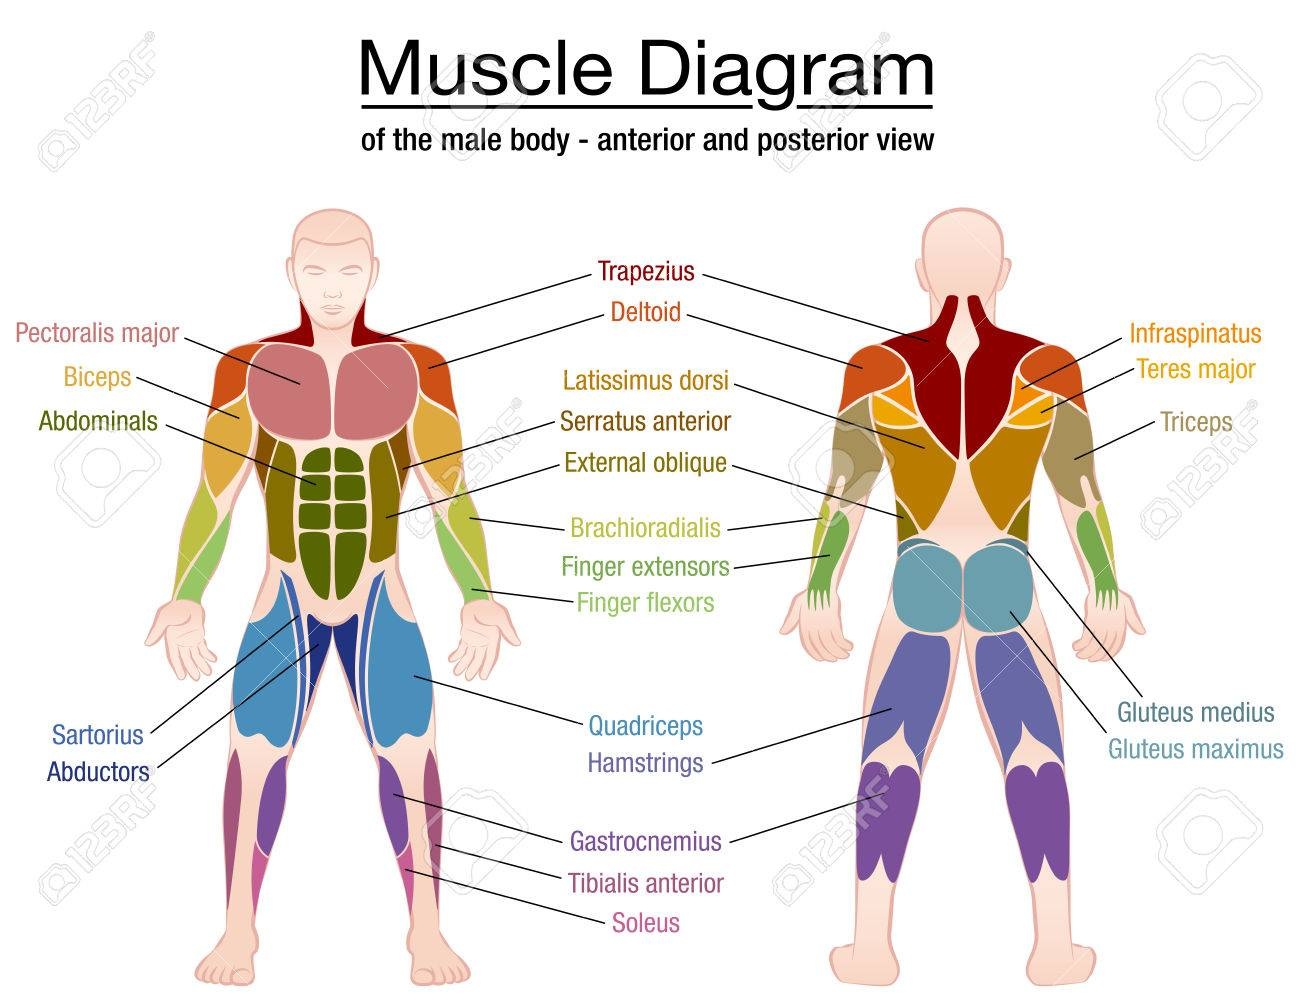 Muscle diagram - most important muscles of an athletic male body - anterior and posterior view - labeled isolated vector illustration on white background. - 76263915